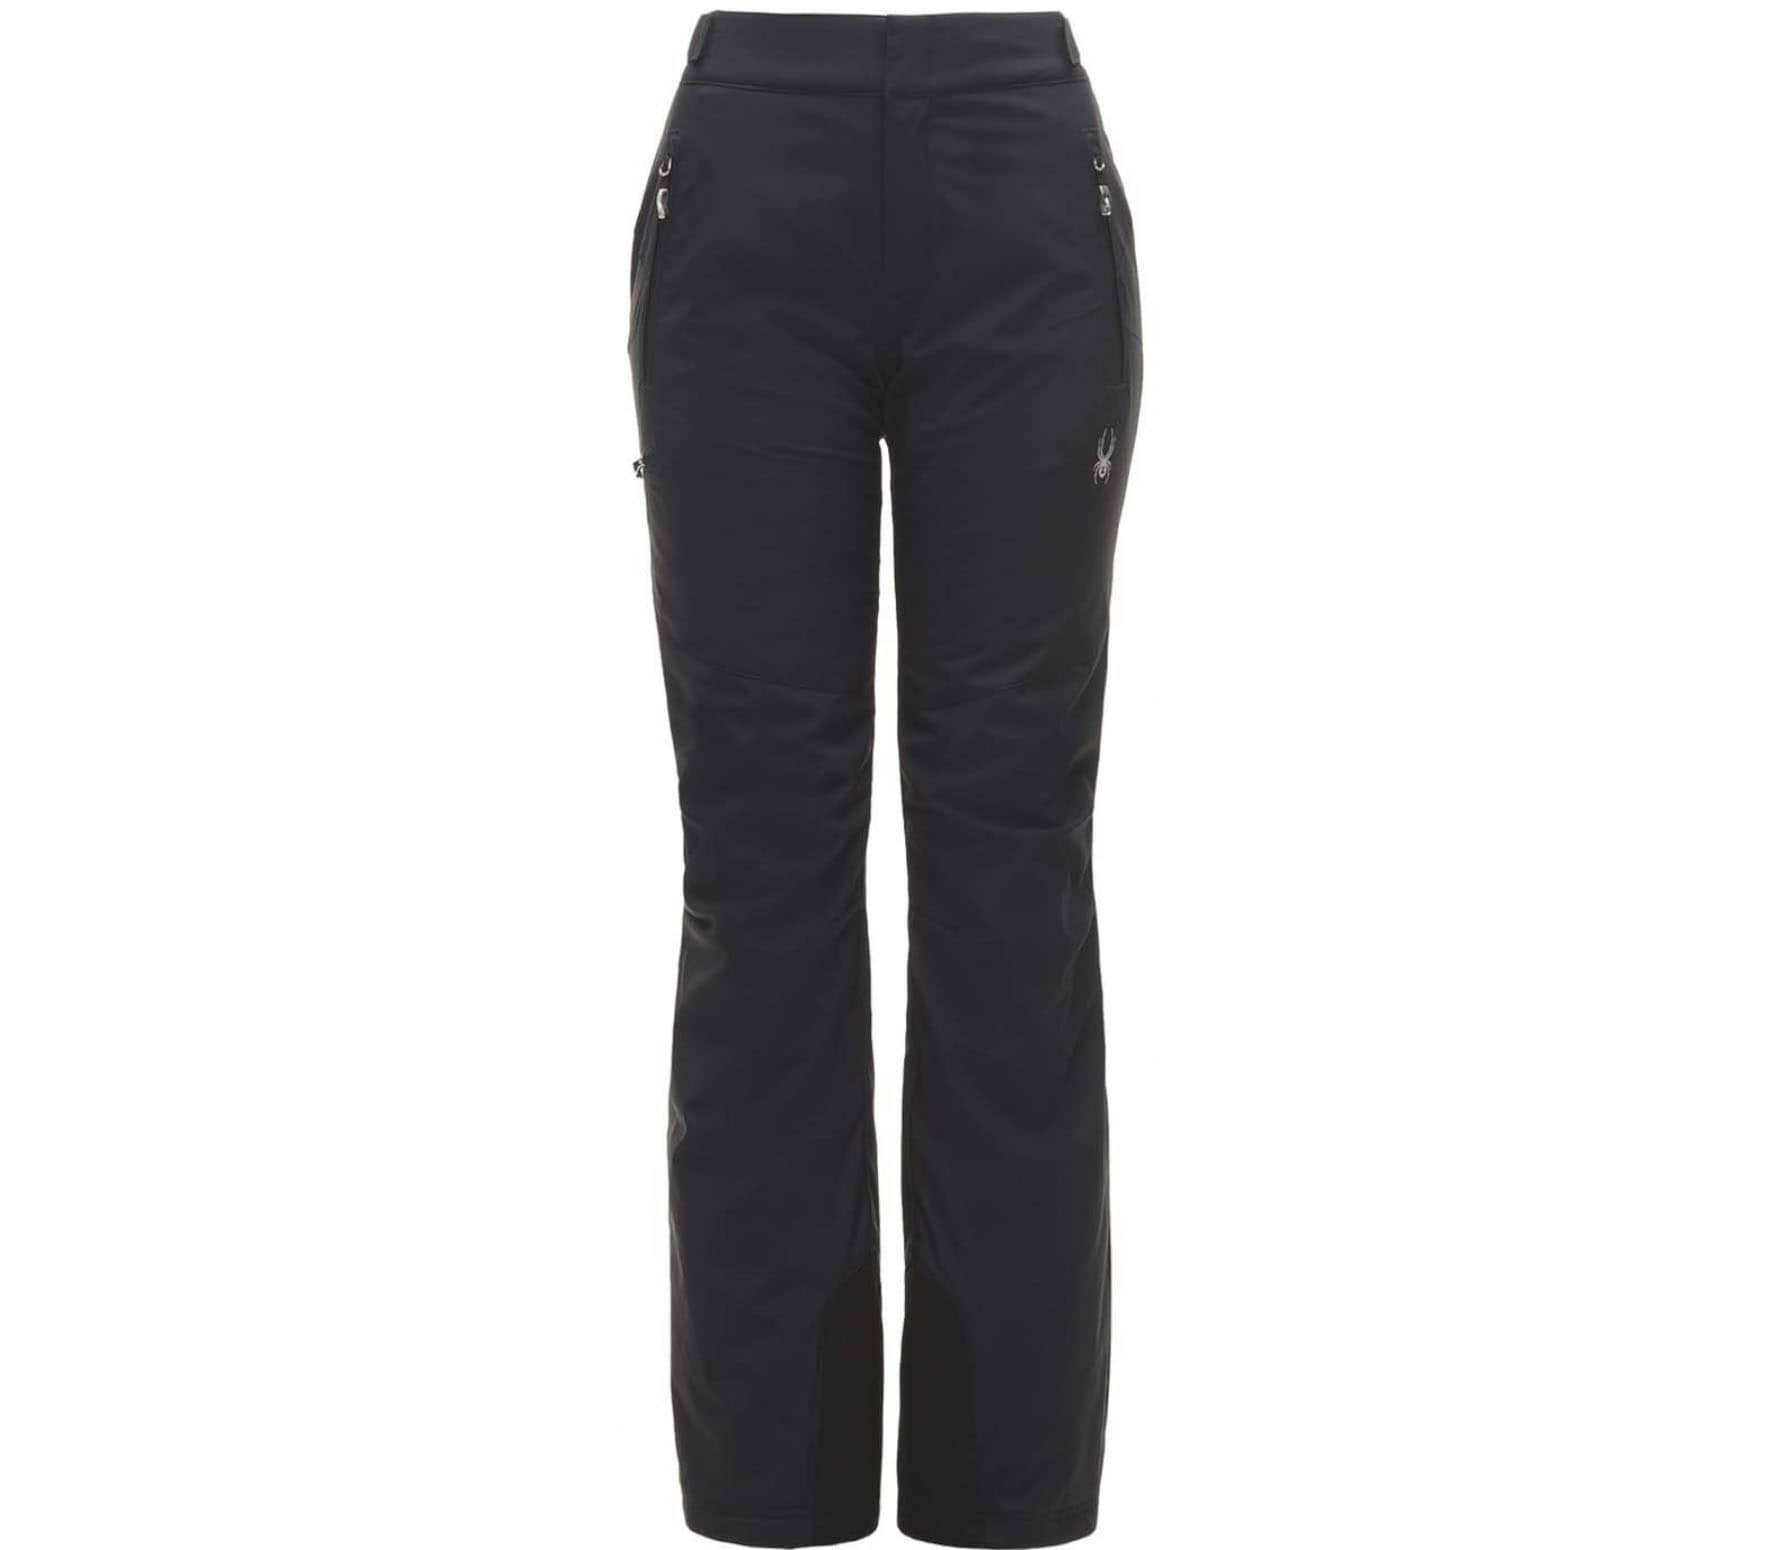 Spyder - Winner Tailored Dam åka skidor Pants (svart)